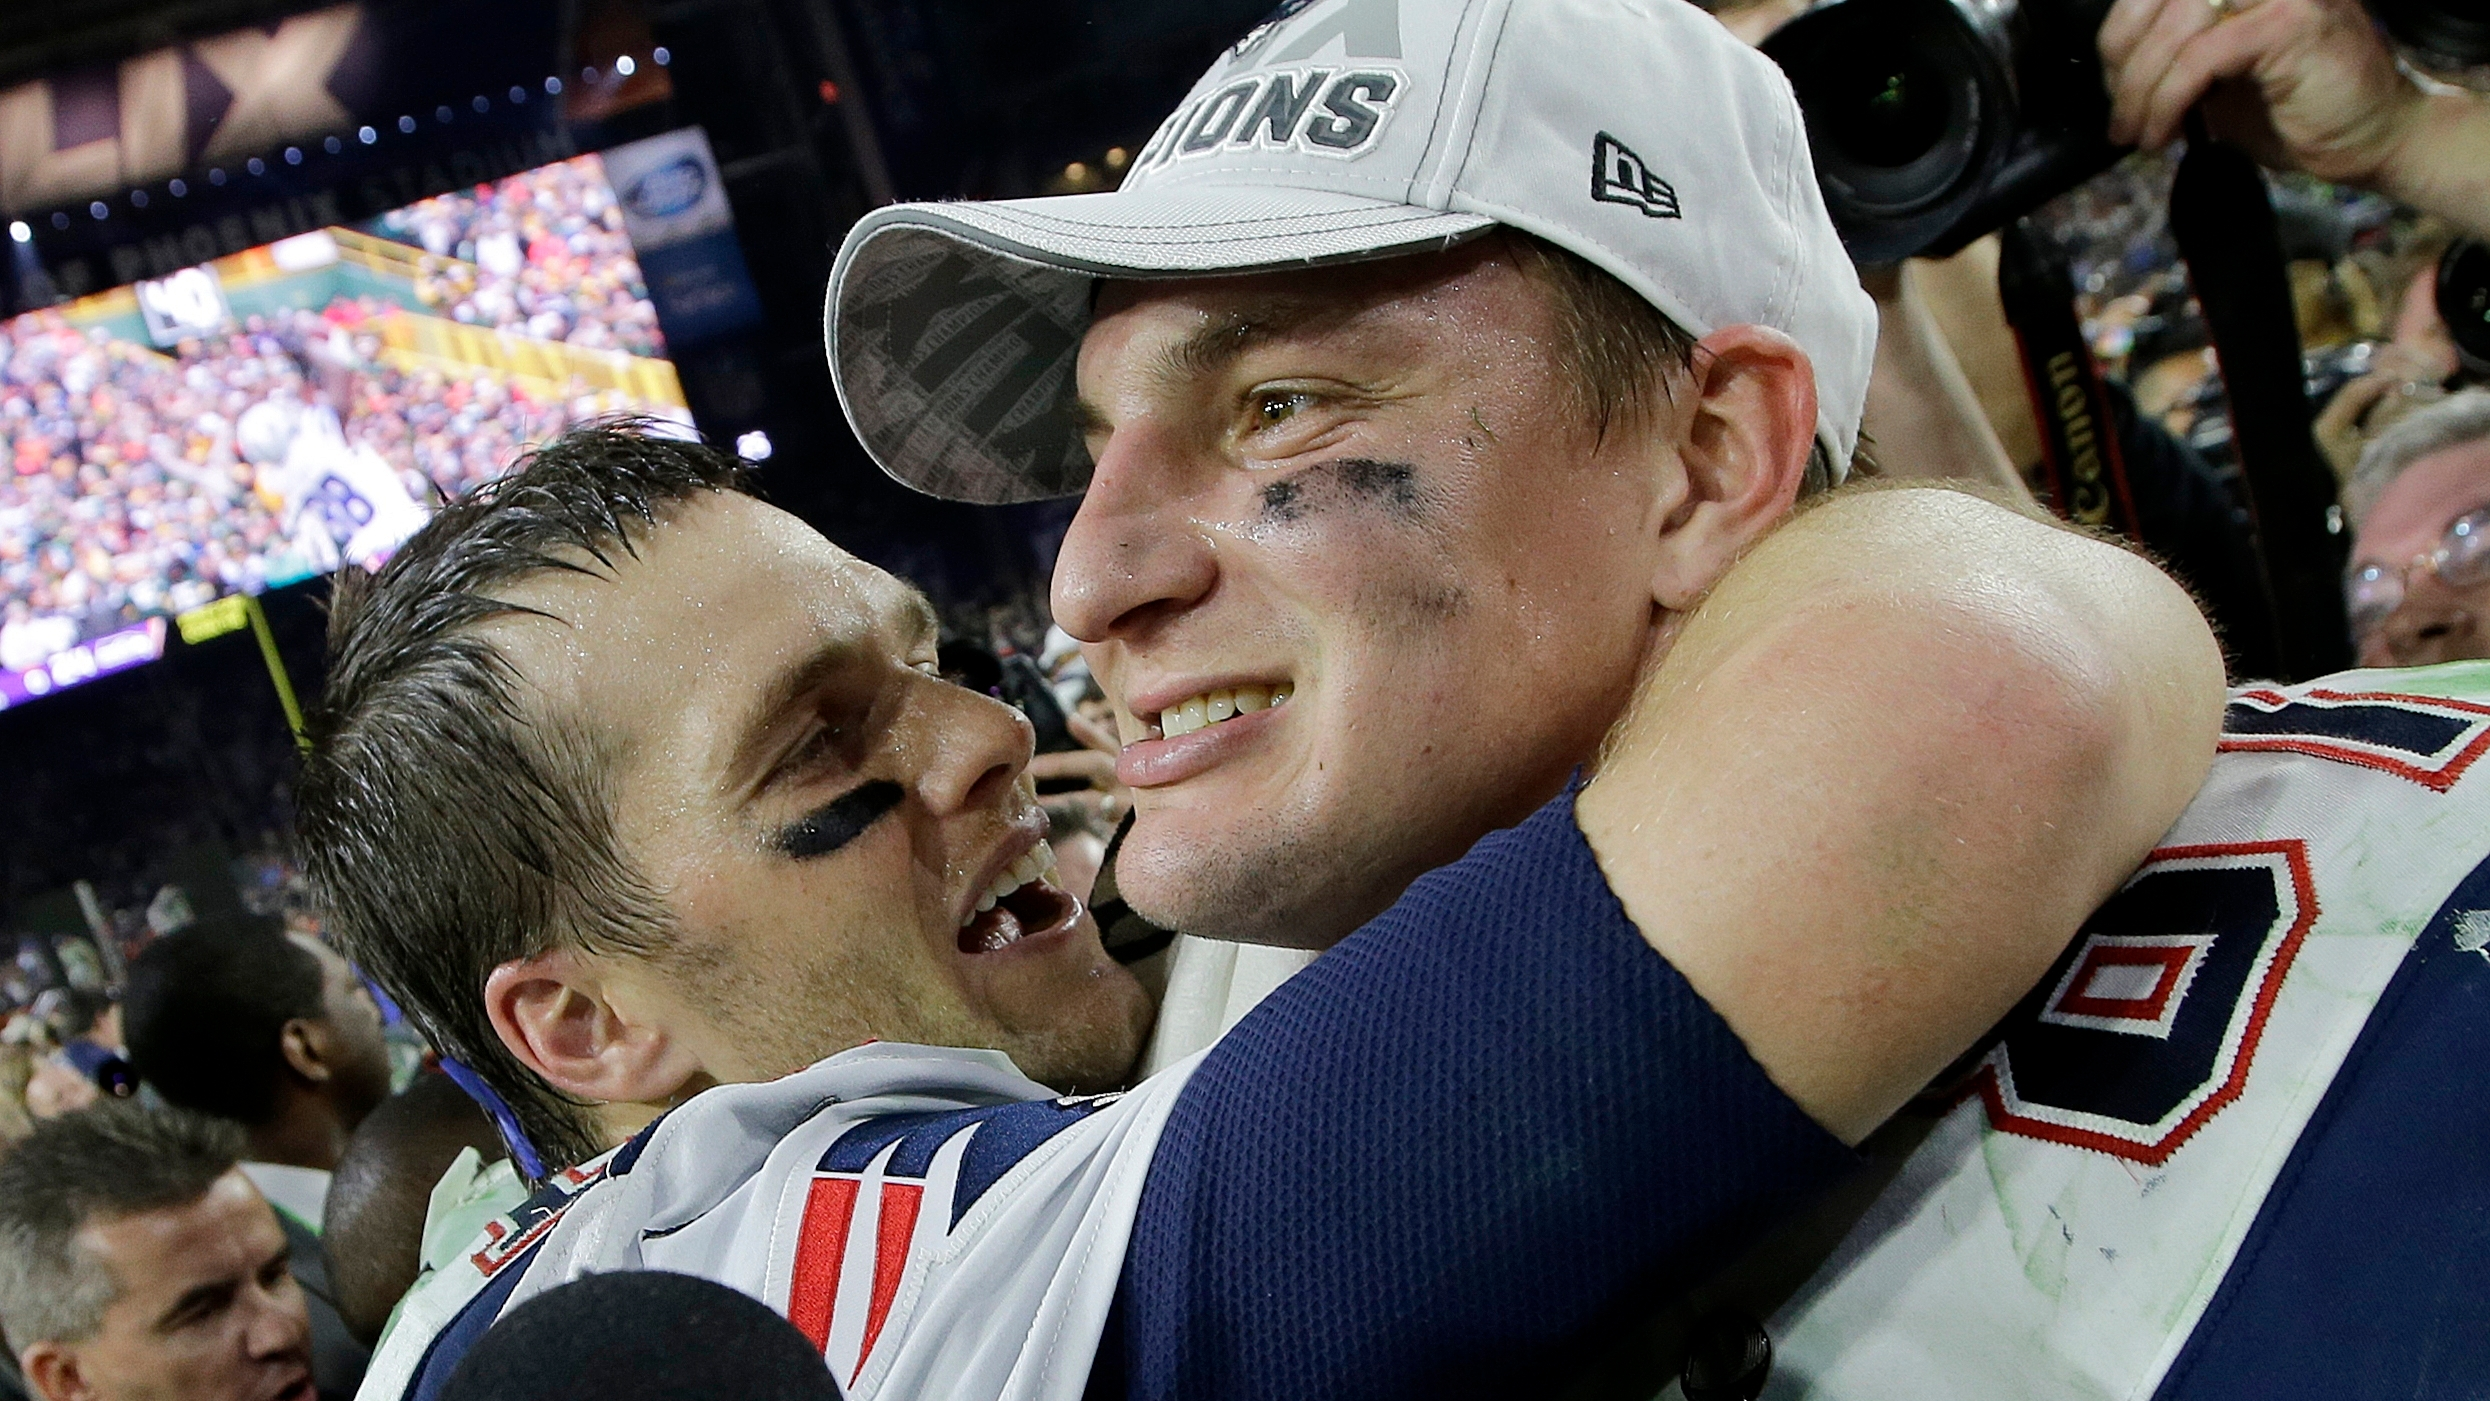 Twitter reacts to Patriots' Rob Gronkowski heading to Tom Brady's Bucs